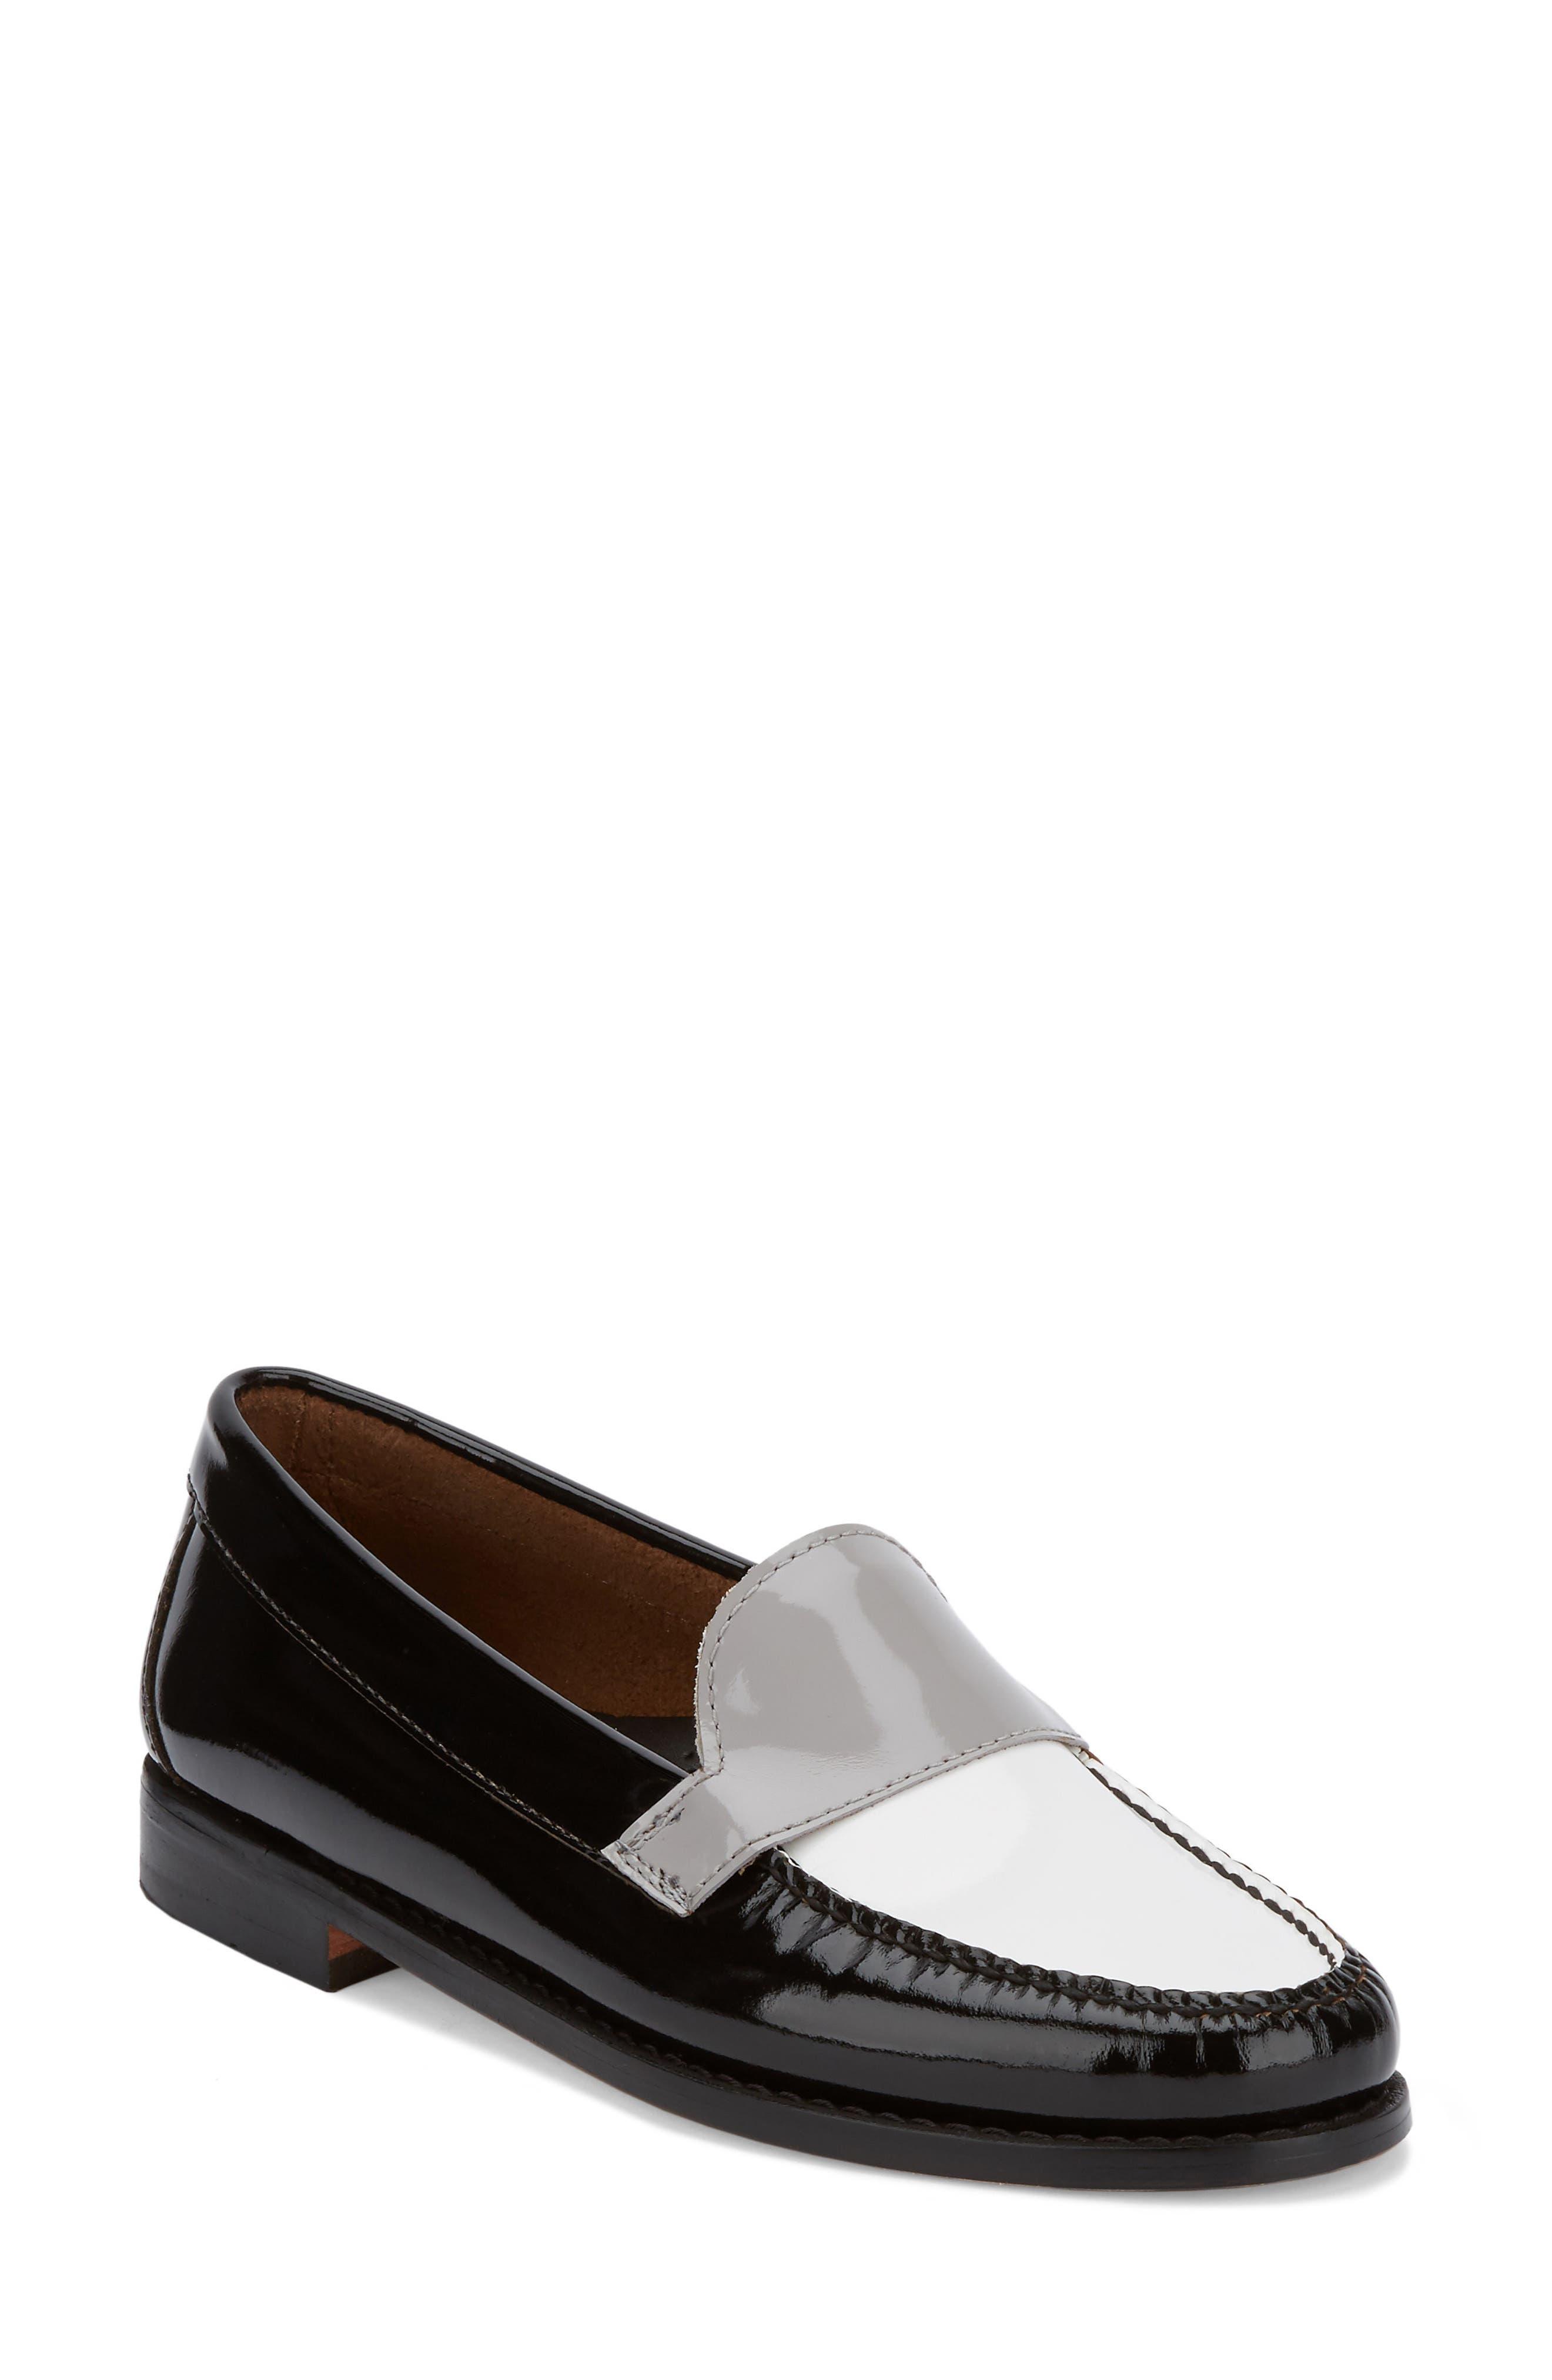 Wylie Loafer,                             Main thumbnail 1, color,                             Black/ White/ Grey Patent